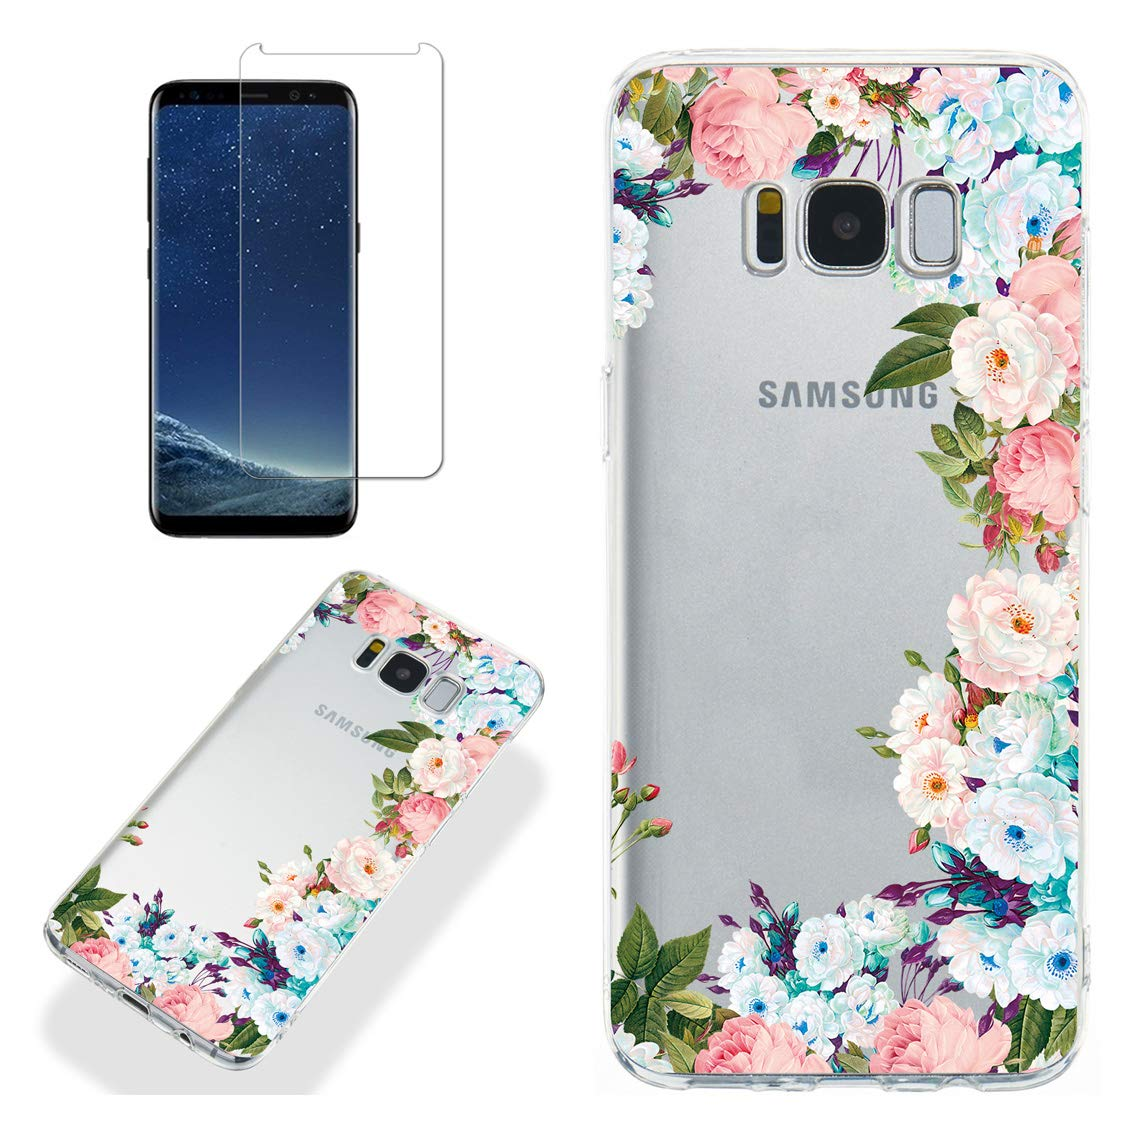 Clear Case for Samsung Galaxy S8 with Screen Protector,QFFUN Ultra Thin Slim Fit Soft Transparent Silicone Phone Case Crystal TPU Bumper Shell Shockproof Scratch Resistant Protective Cover - Flowers